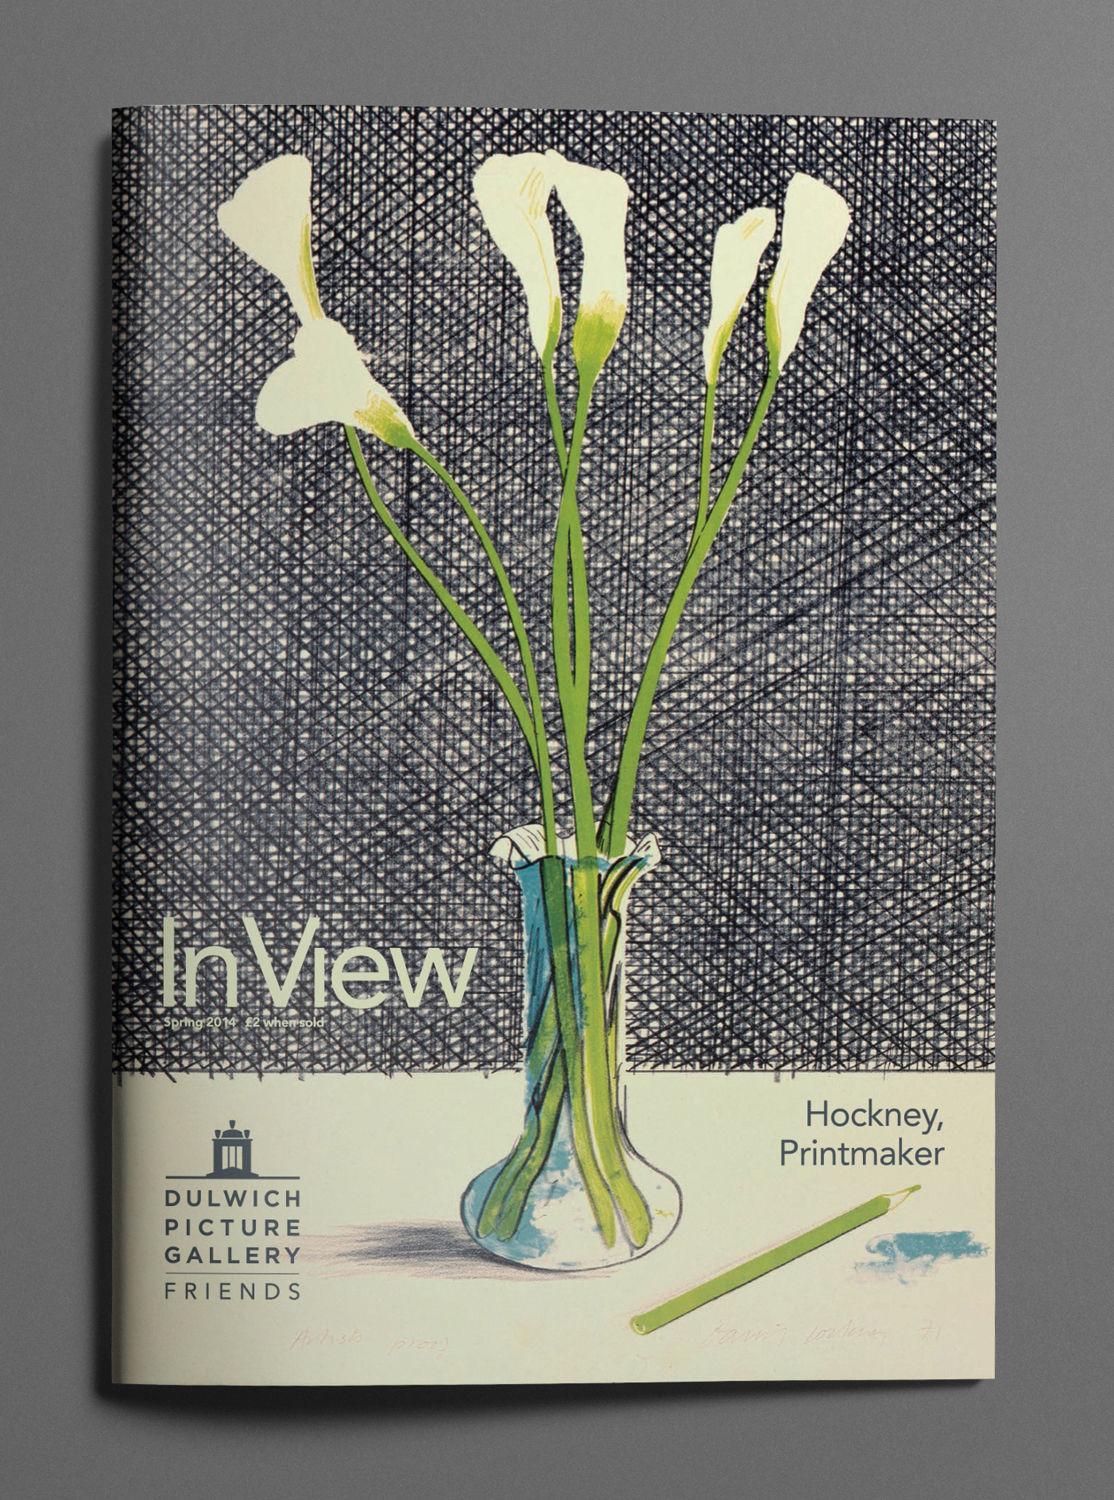 inviewspr-cover3low.jpg